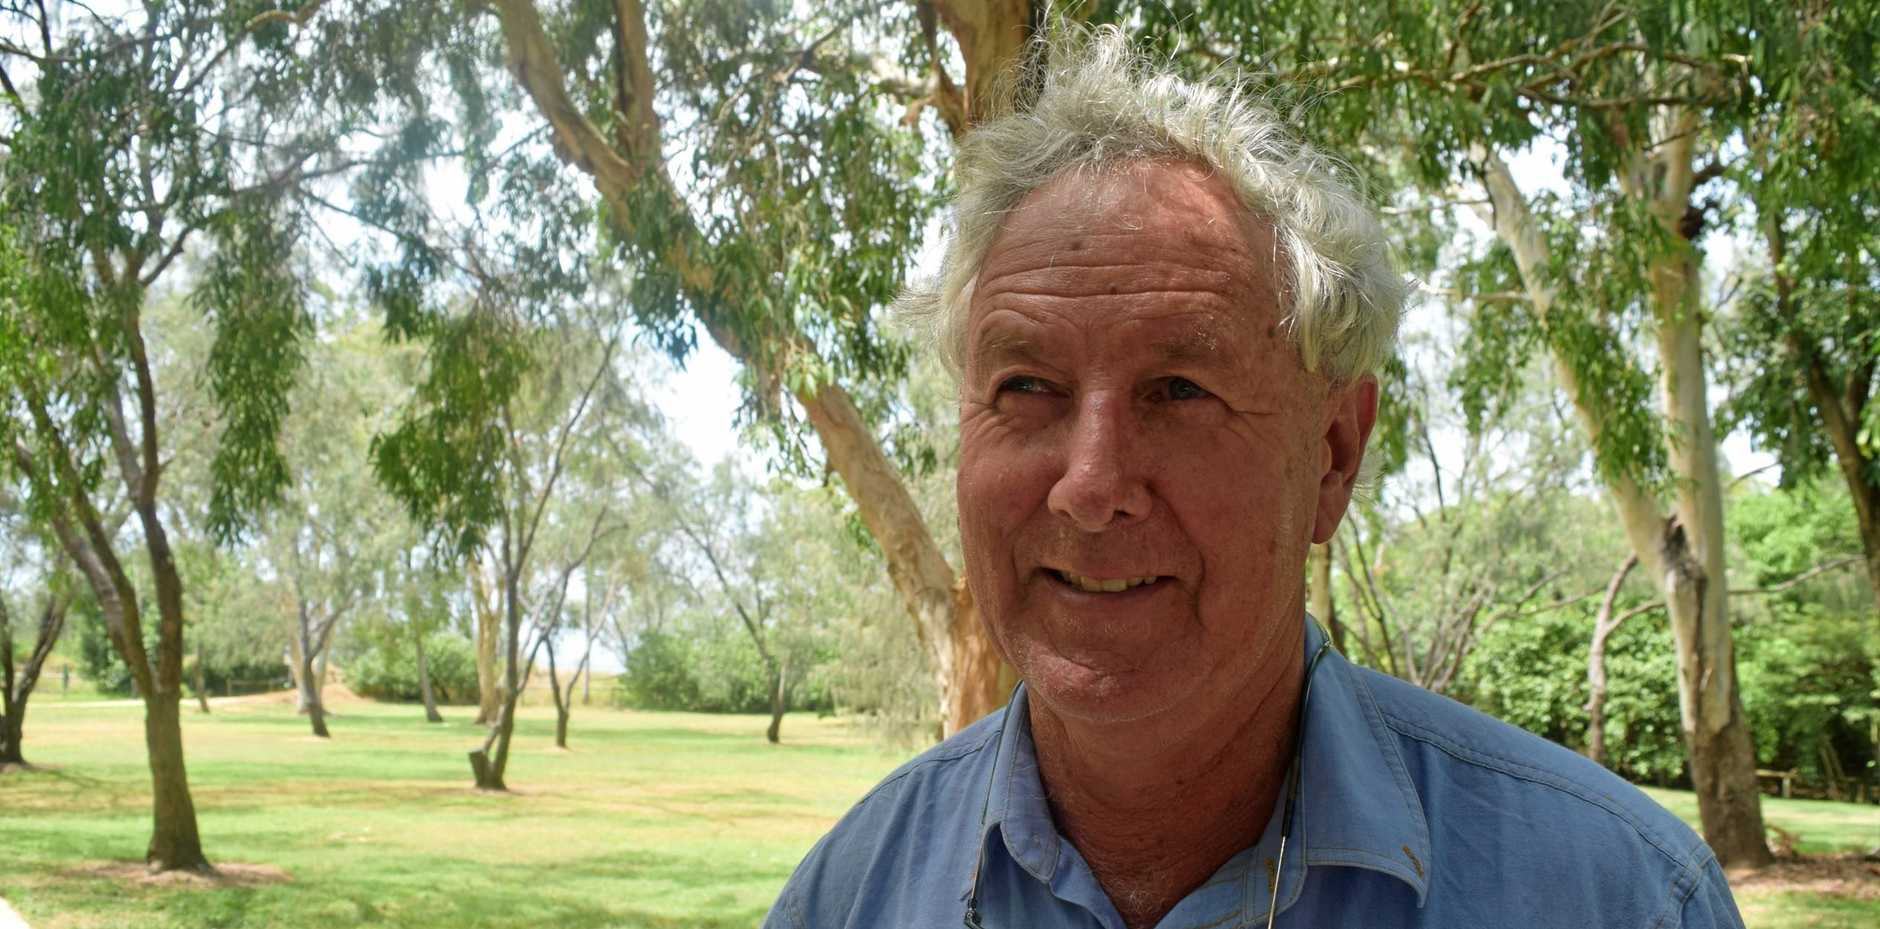 Ecologist, author and sustainable farmer Charles Massy is calling for a revolution in agriculture.